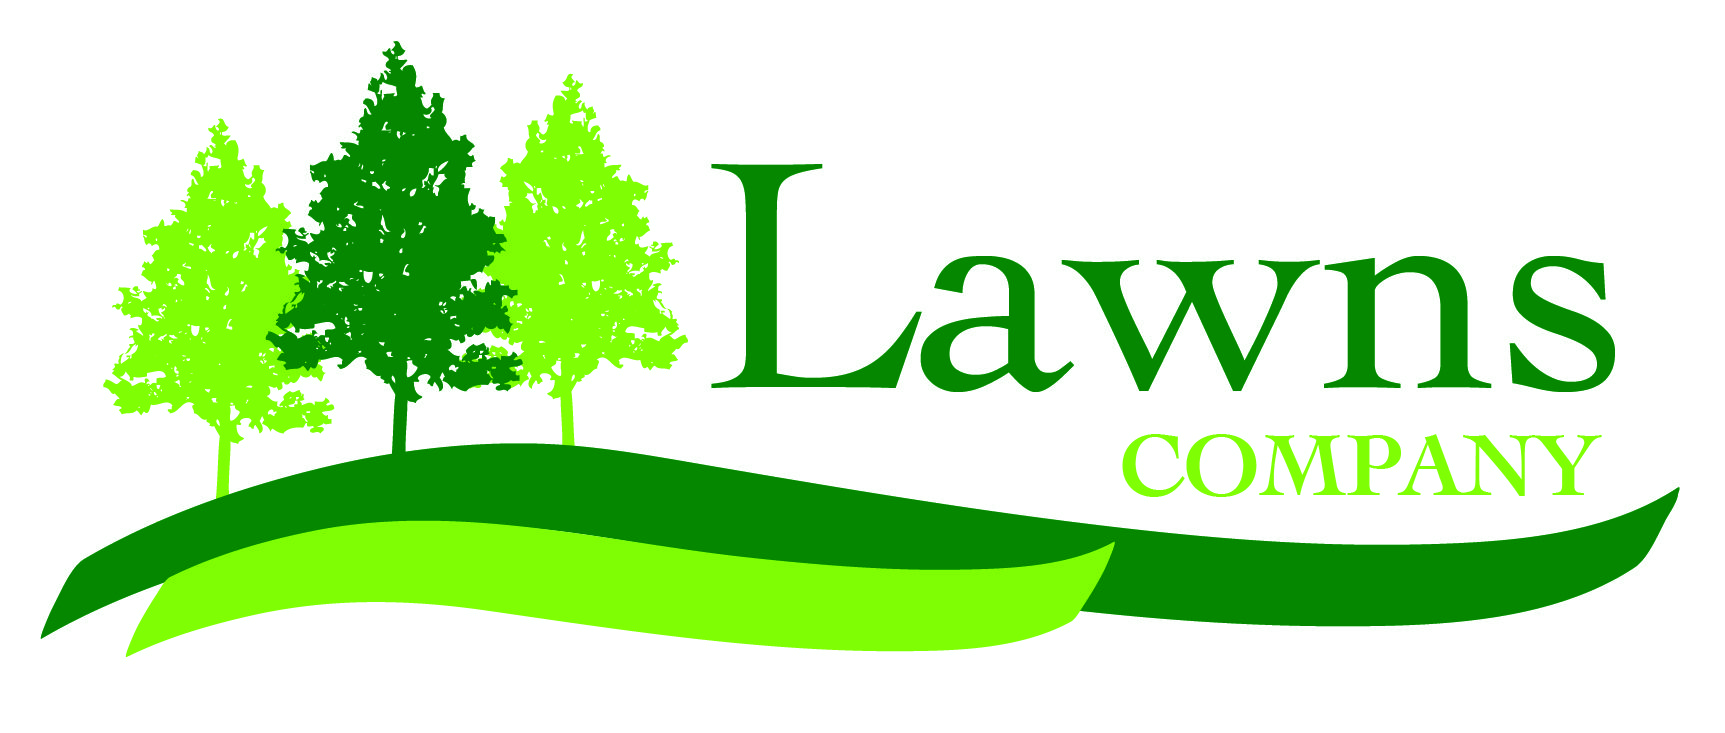 start a lawncare business how to start a lawn care business start rh pinterest com Lawn Care Clip Art Lawn Care Clip Art